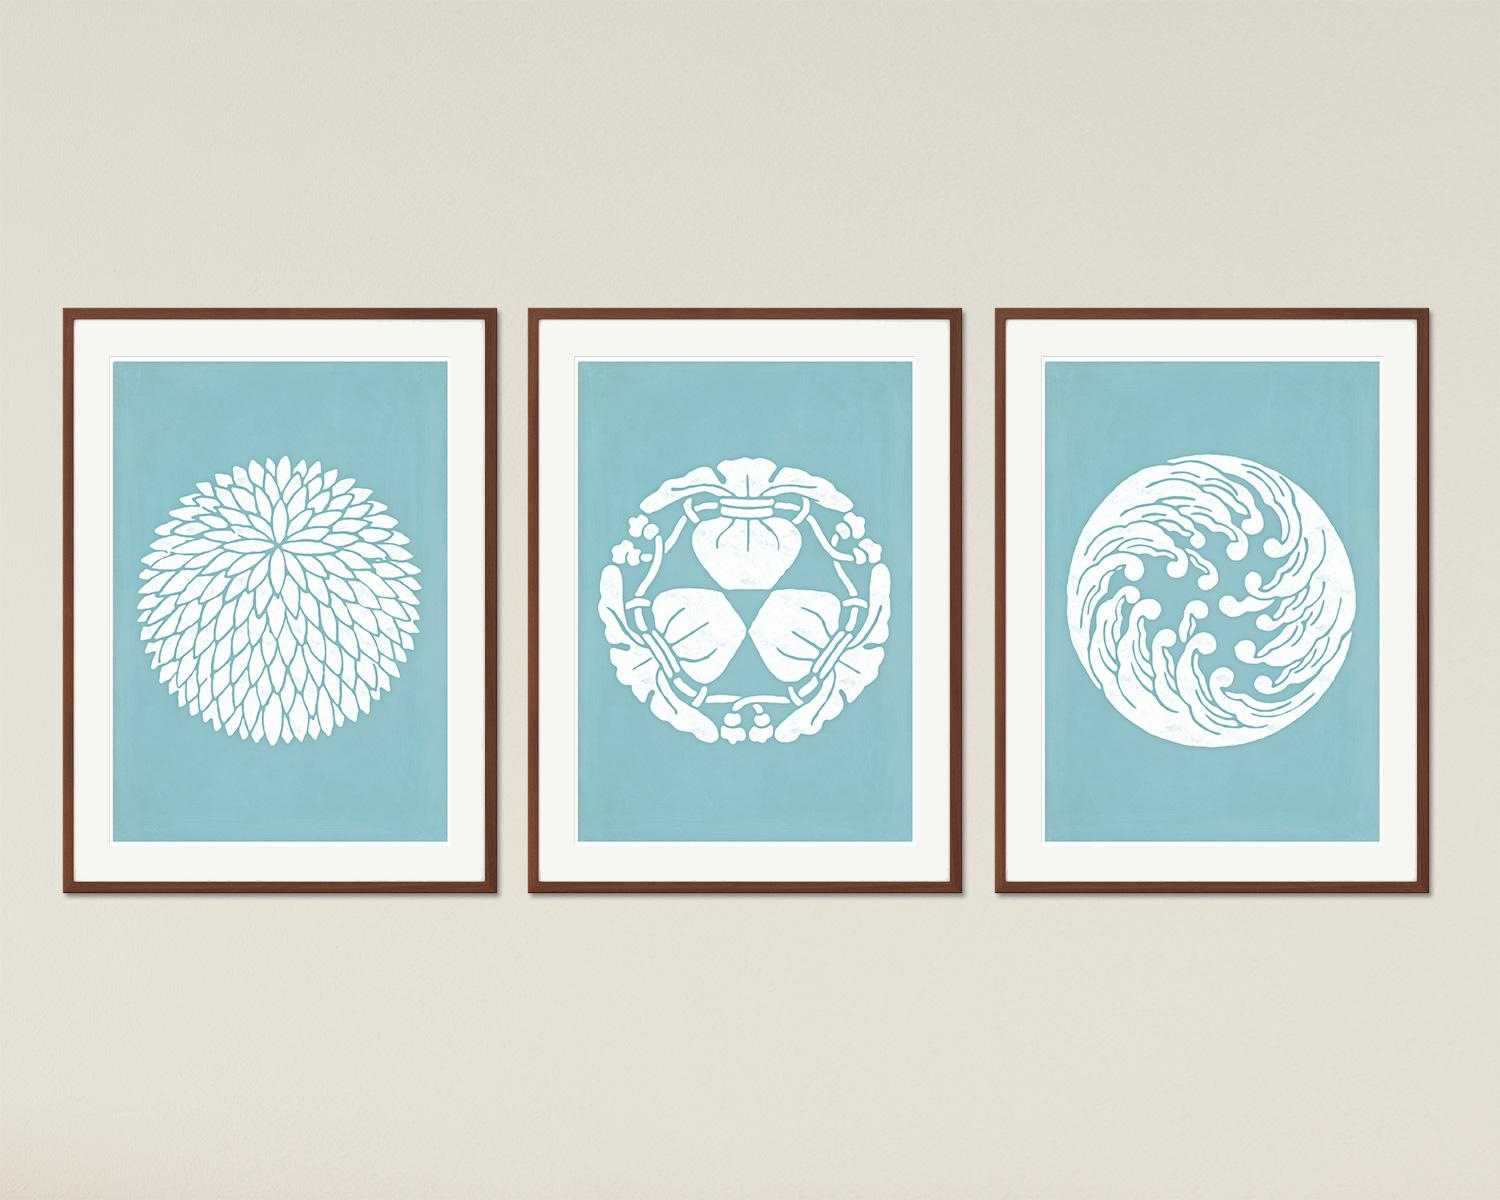 Japanese Designs – Minimalist Printable Poster Set, Asian Decor Throughout Asian Themed Wall Art (View 5 of 20)